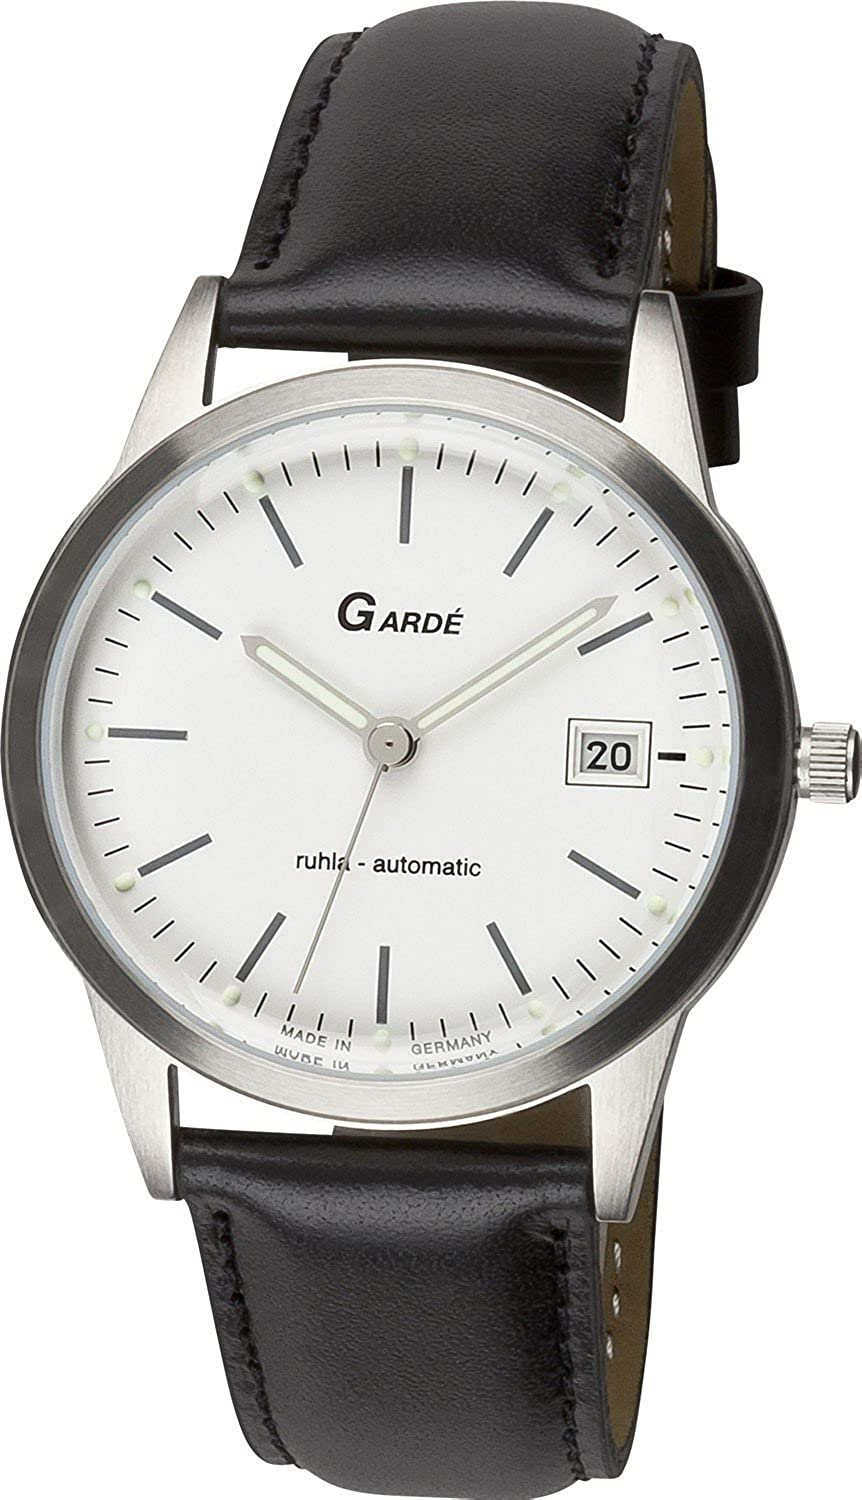 Gardé Automatic Elegante Herrenuhr Made in Germany